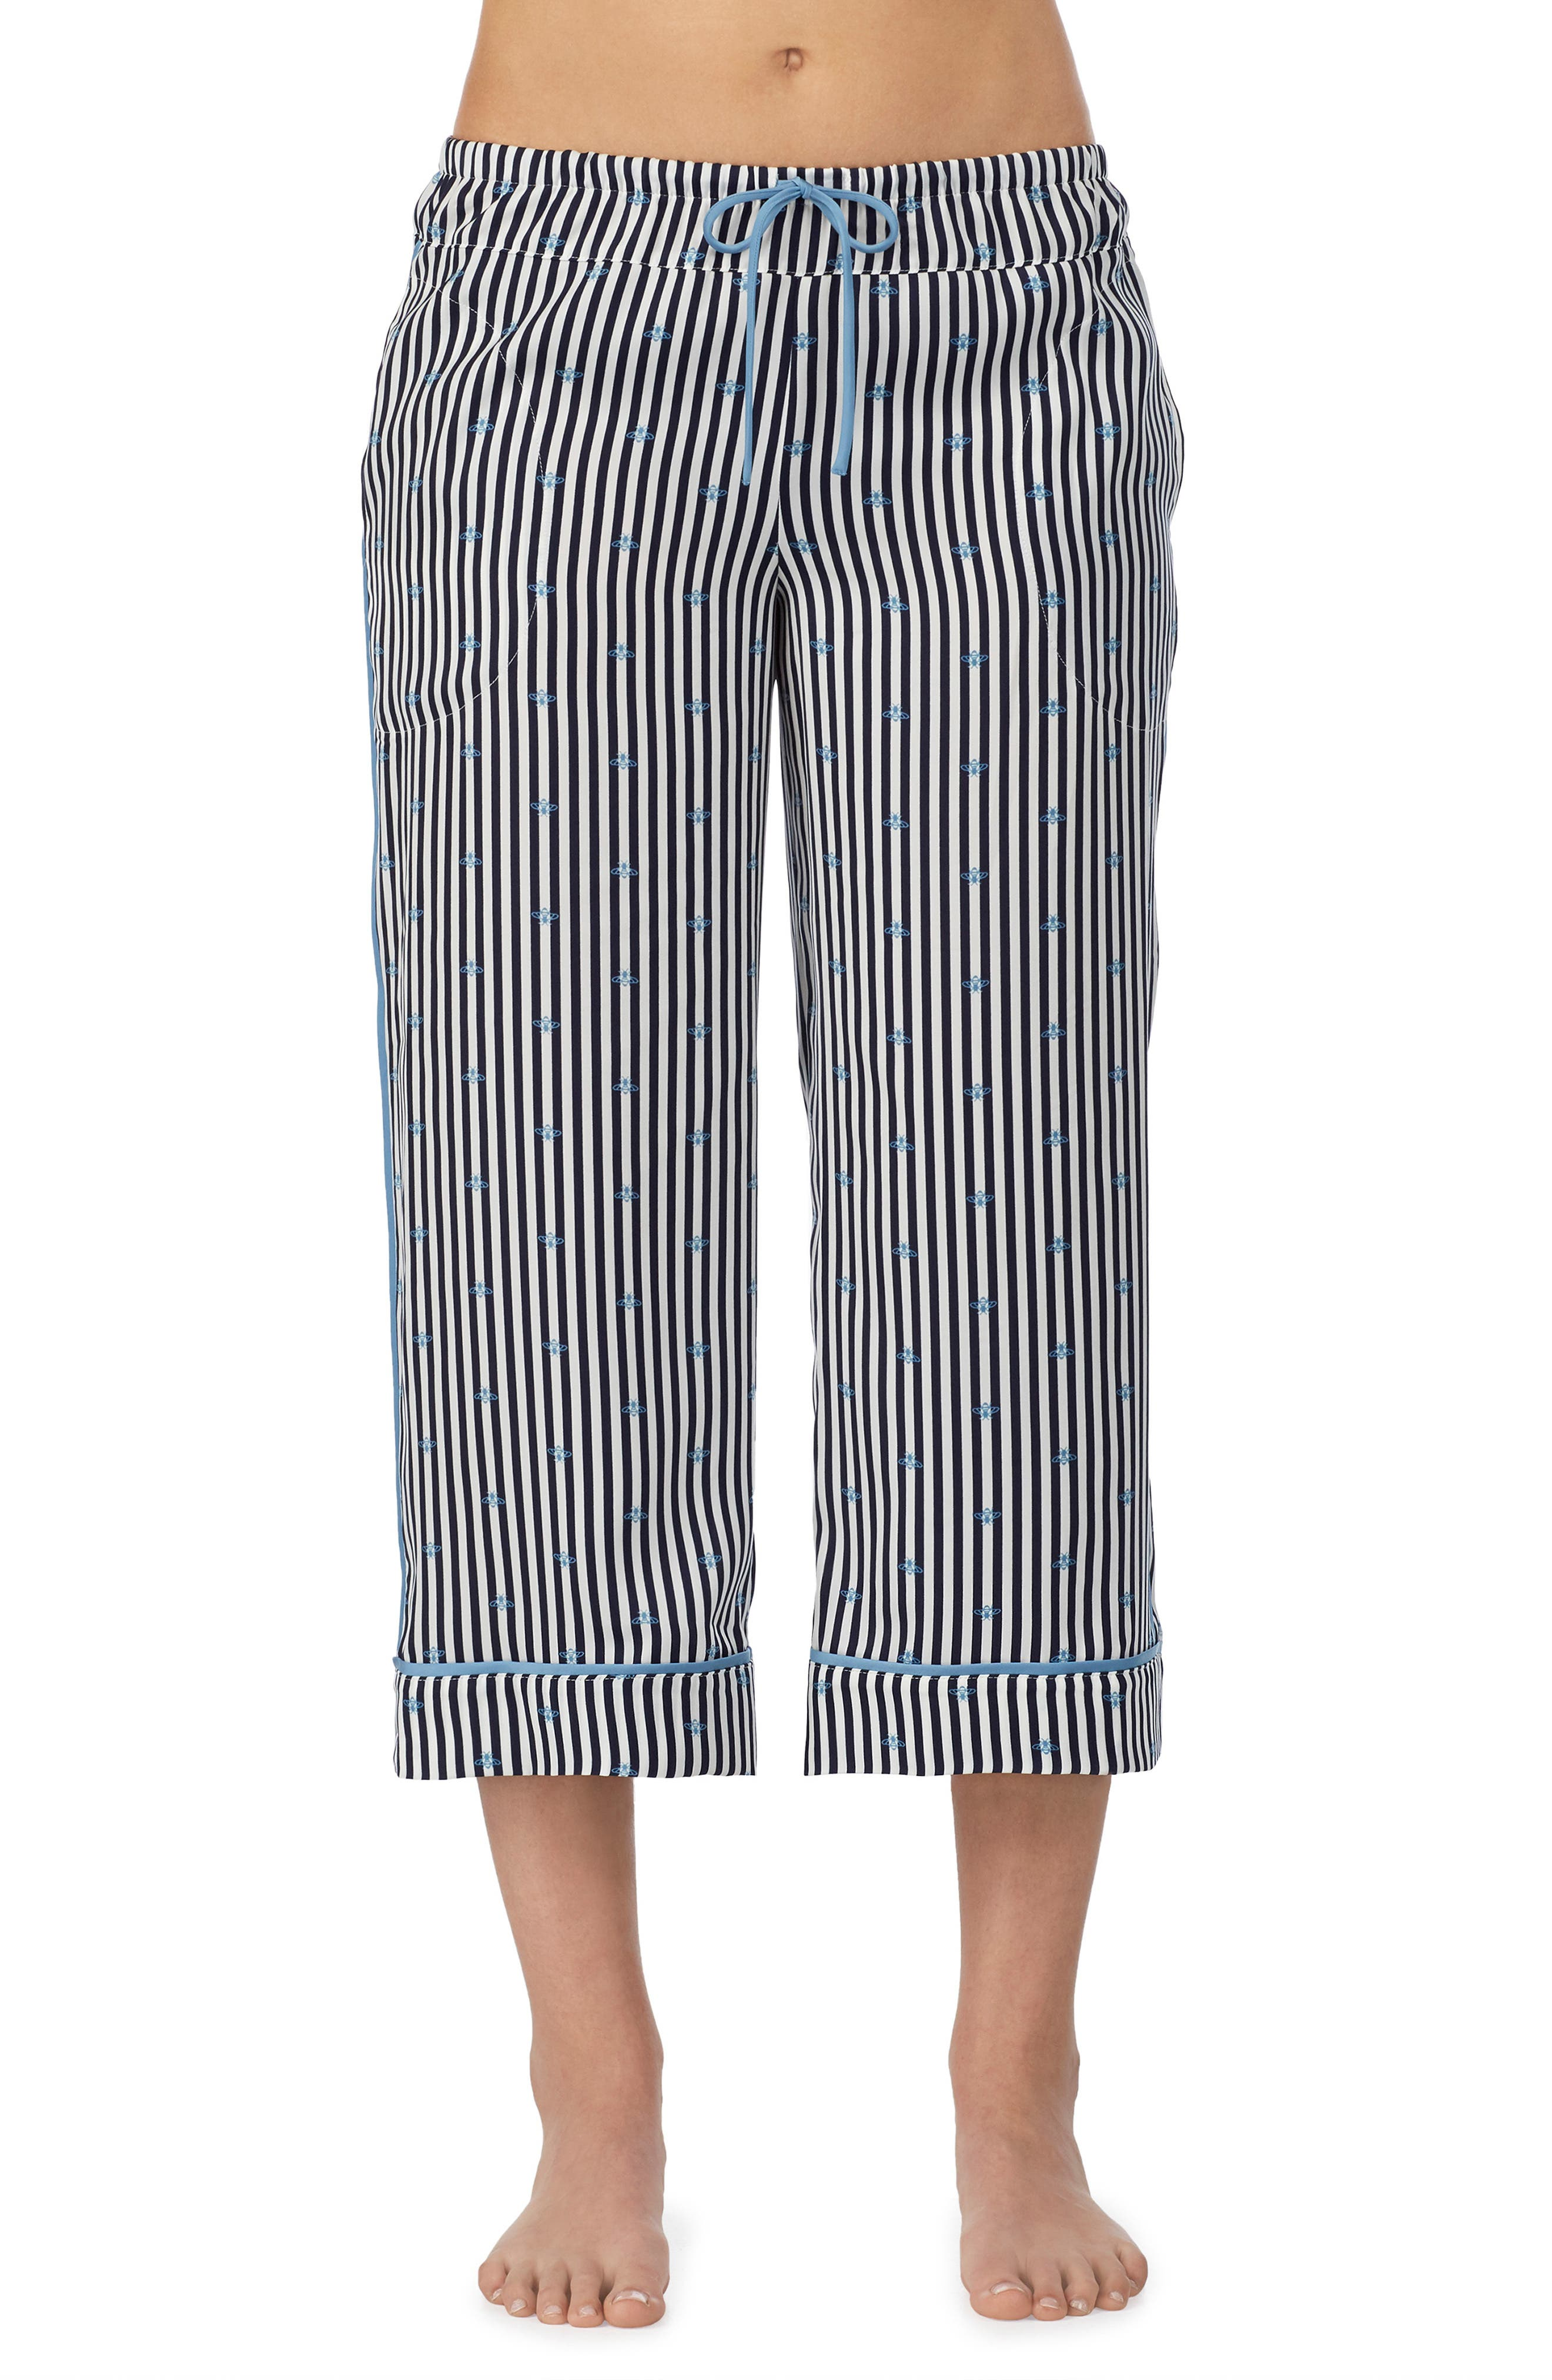 Room Service Cropped Pajamas Pants, Blue (Nordstrom Exclusive)